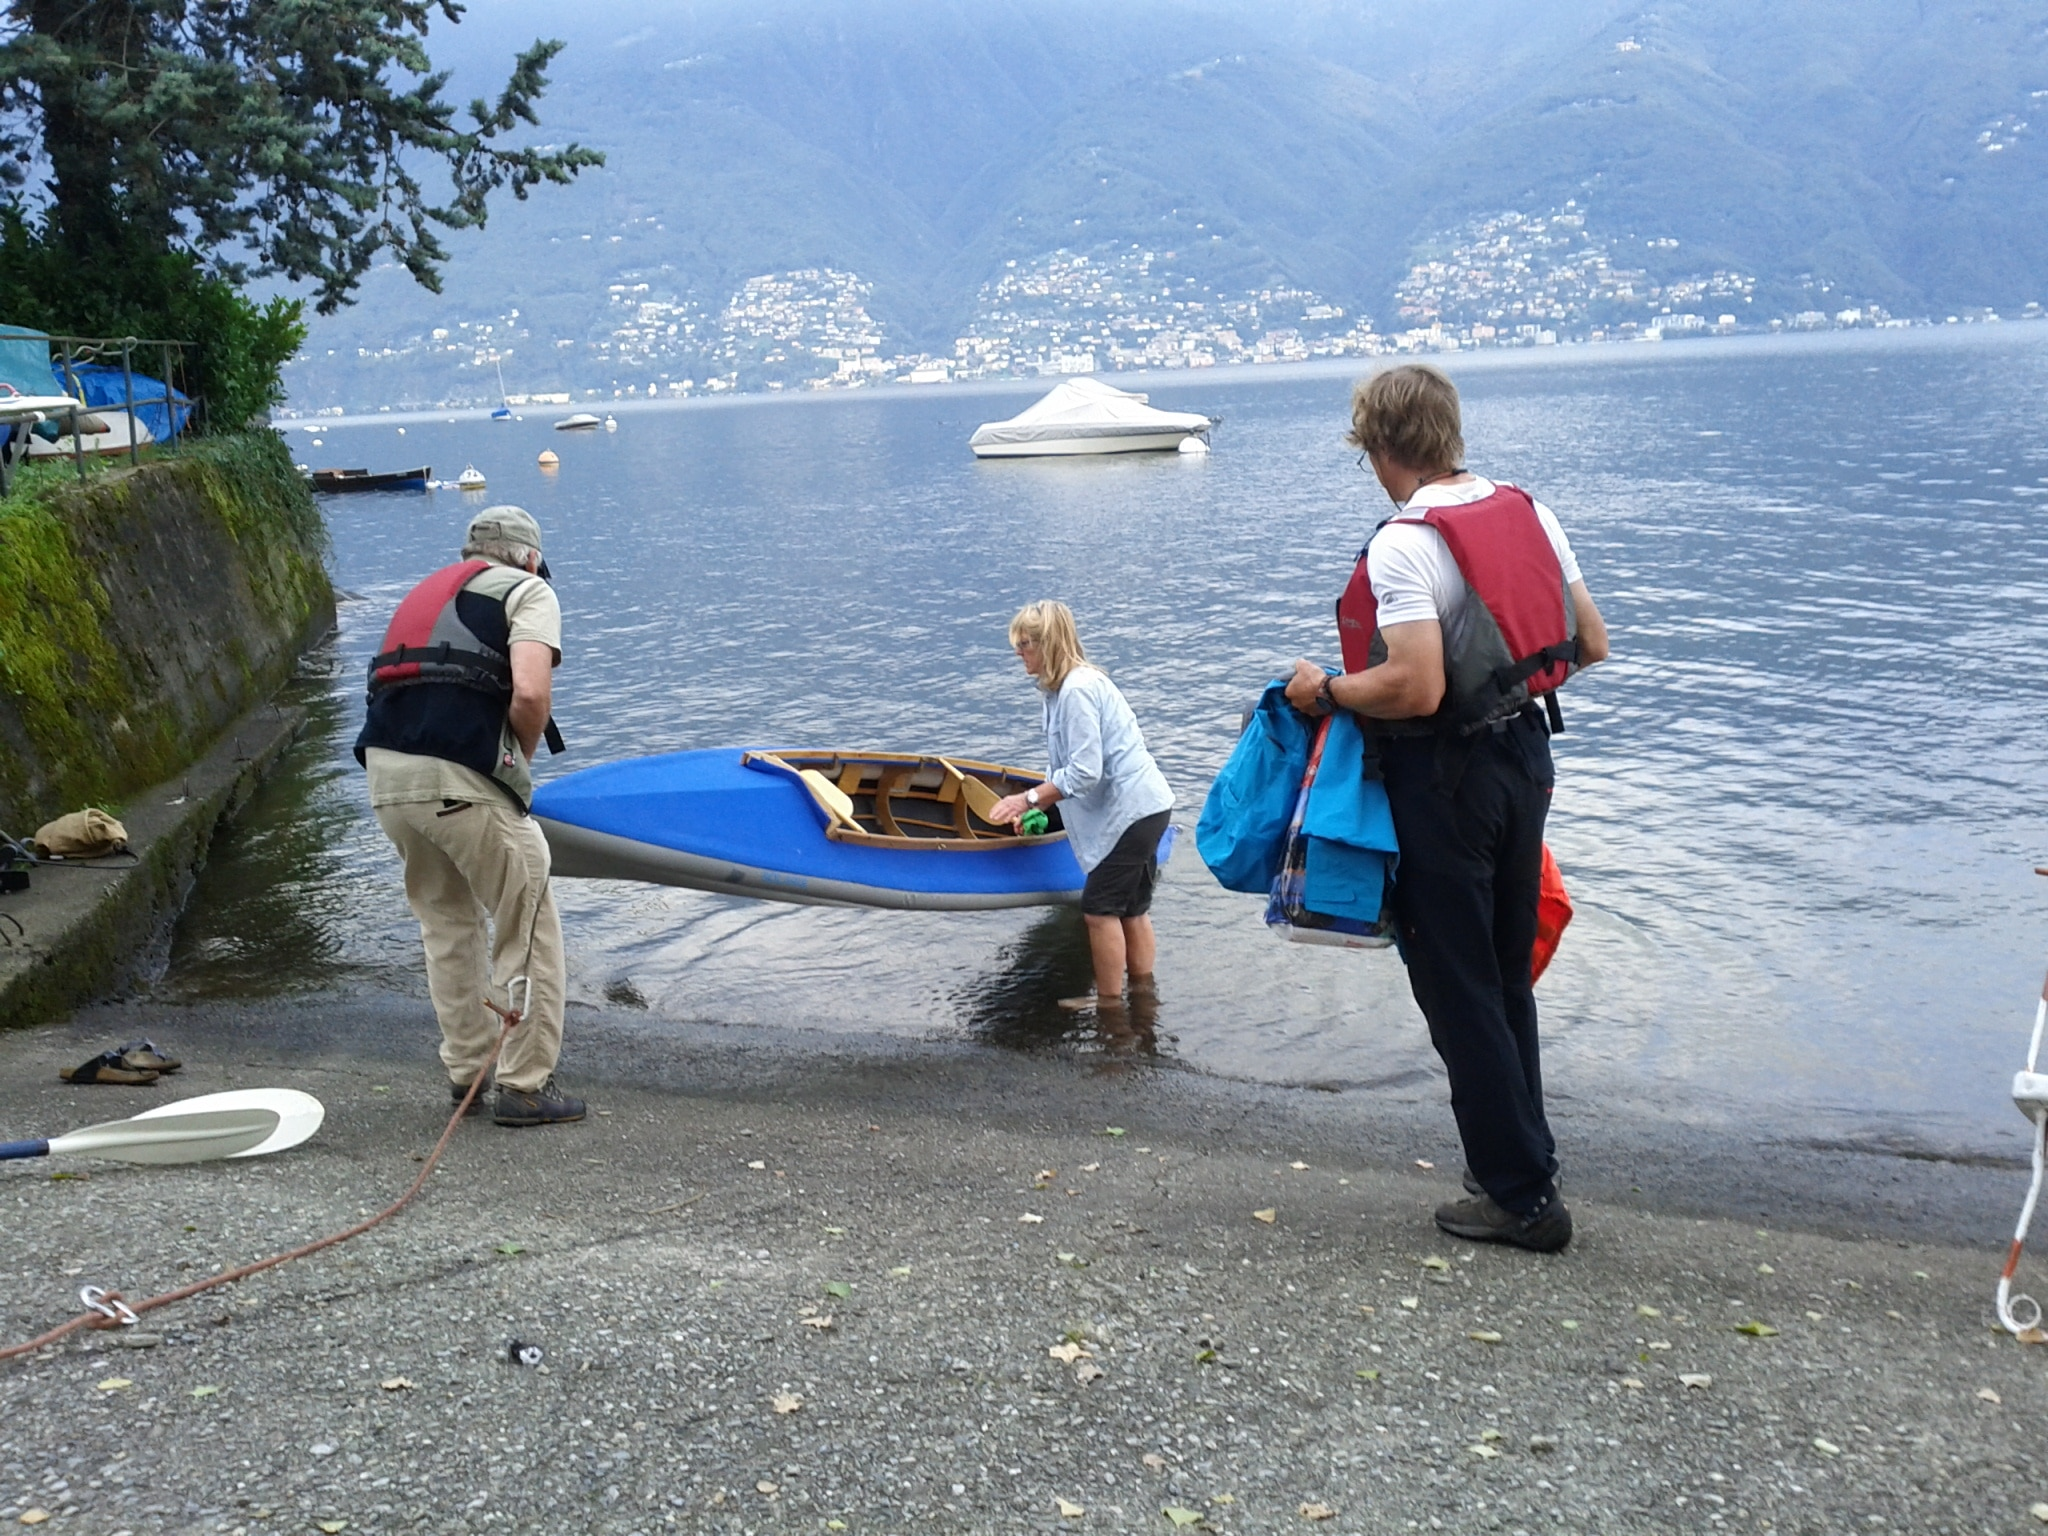 Larry and Martine Ware putting our boat into the water for the crossing of Lago Maggiore.